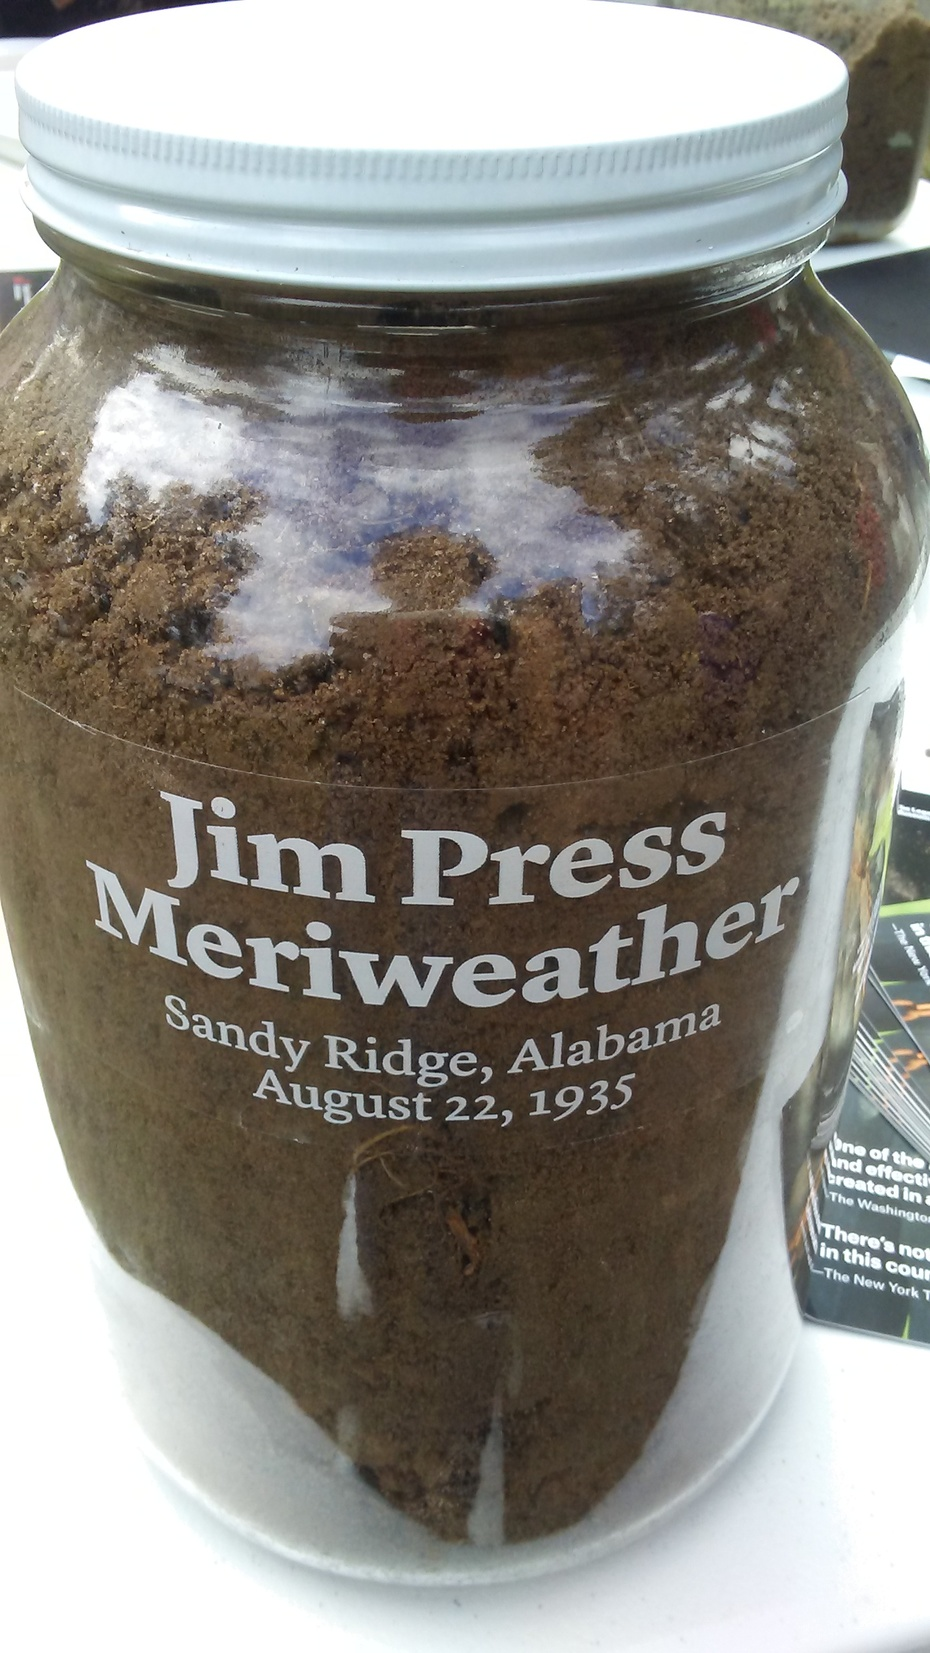 JIM PRESS MERRIWEATHER